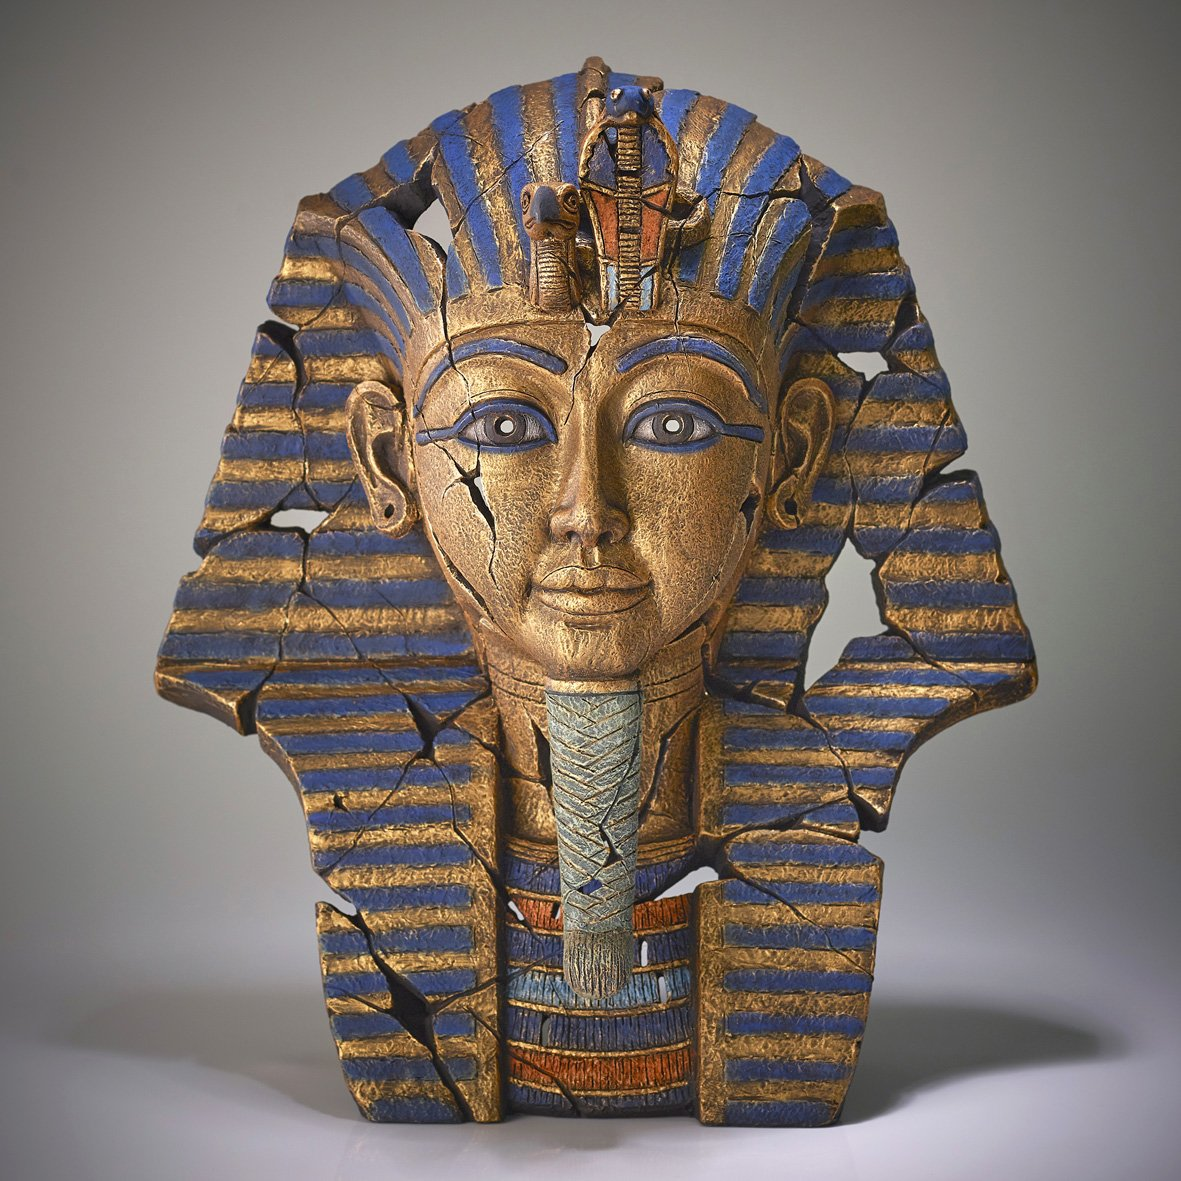 Tutankhamun Bust by Matt Buckley of Edge Sculptures